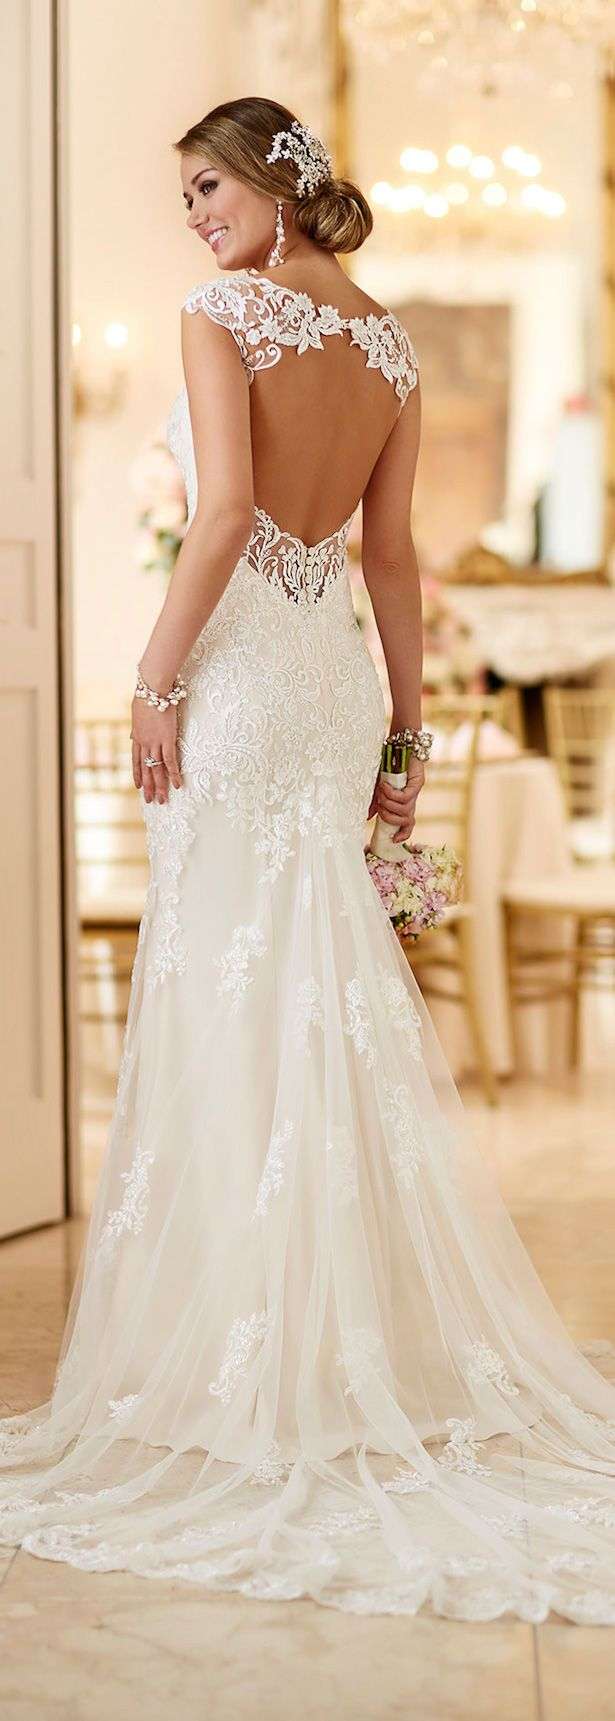 best wedding dresses images on pinterest short wedding gowns